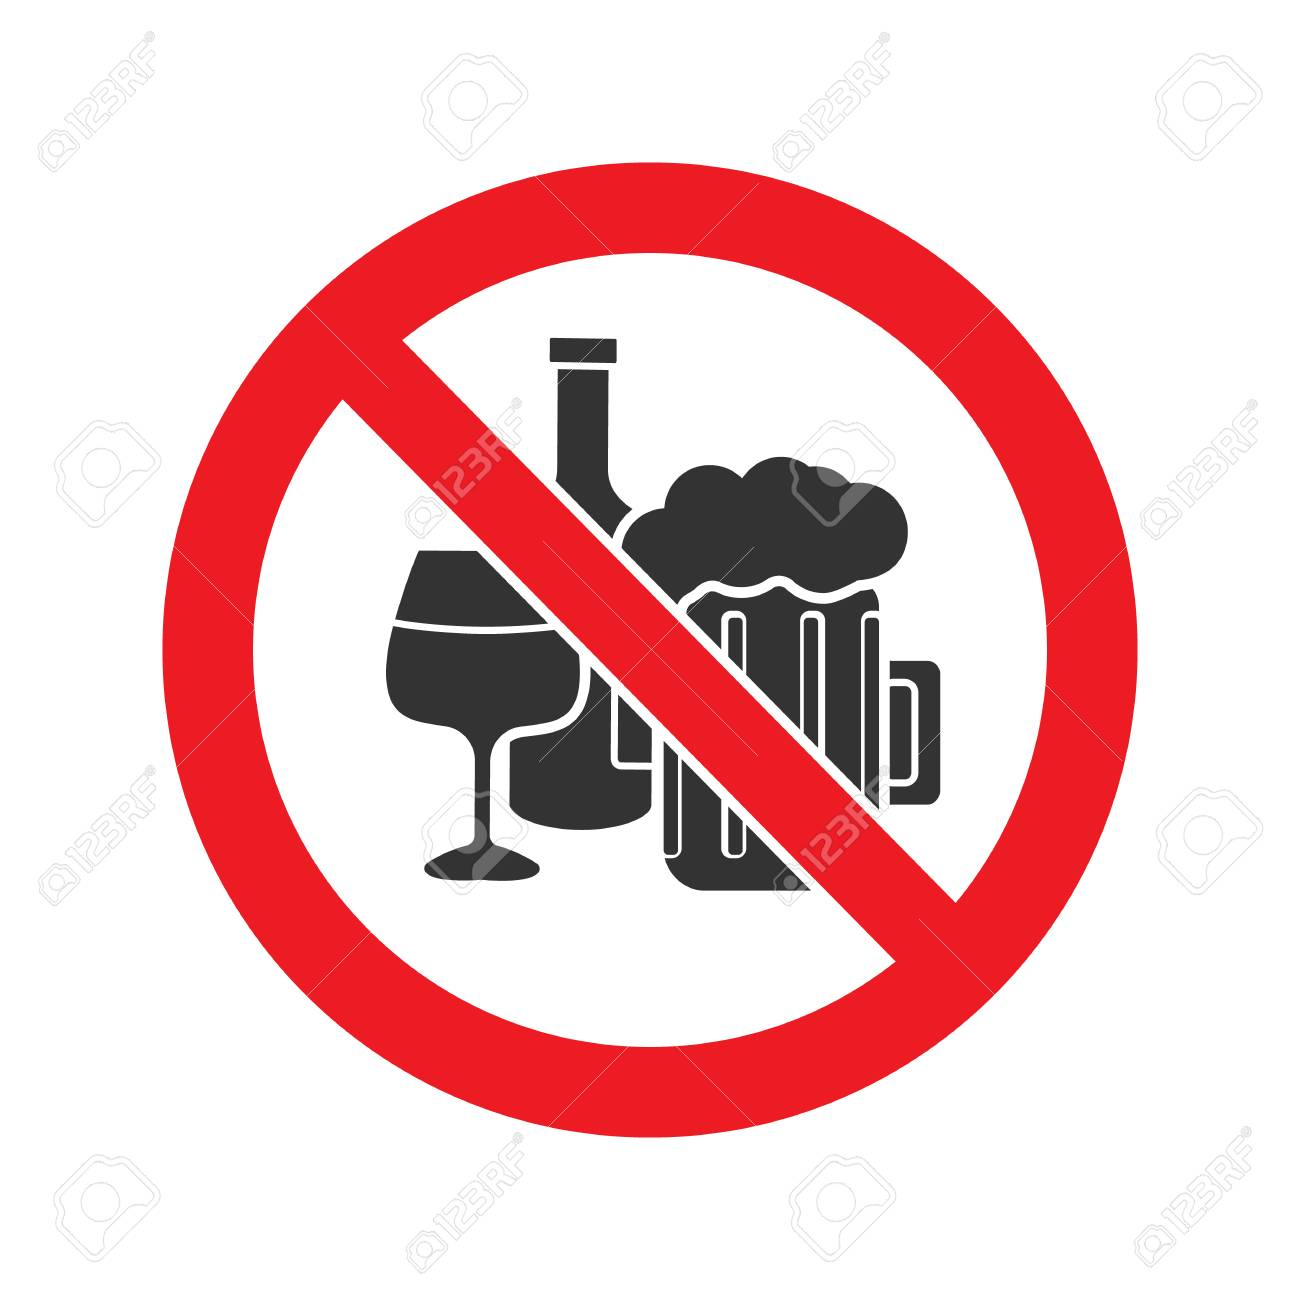 Forbidden sign with alcohol drinks glyph icon Vector isolated illustration - 98892561